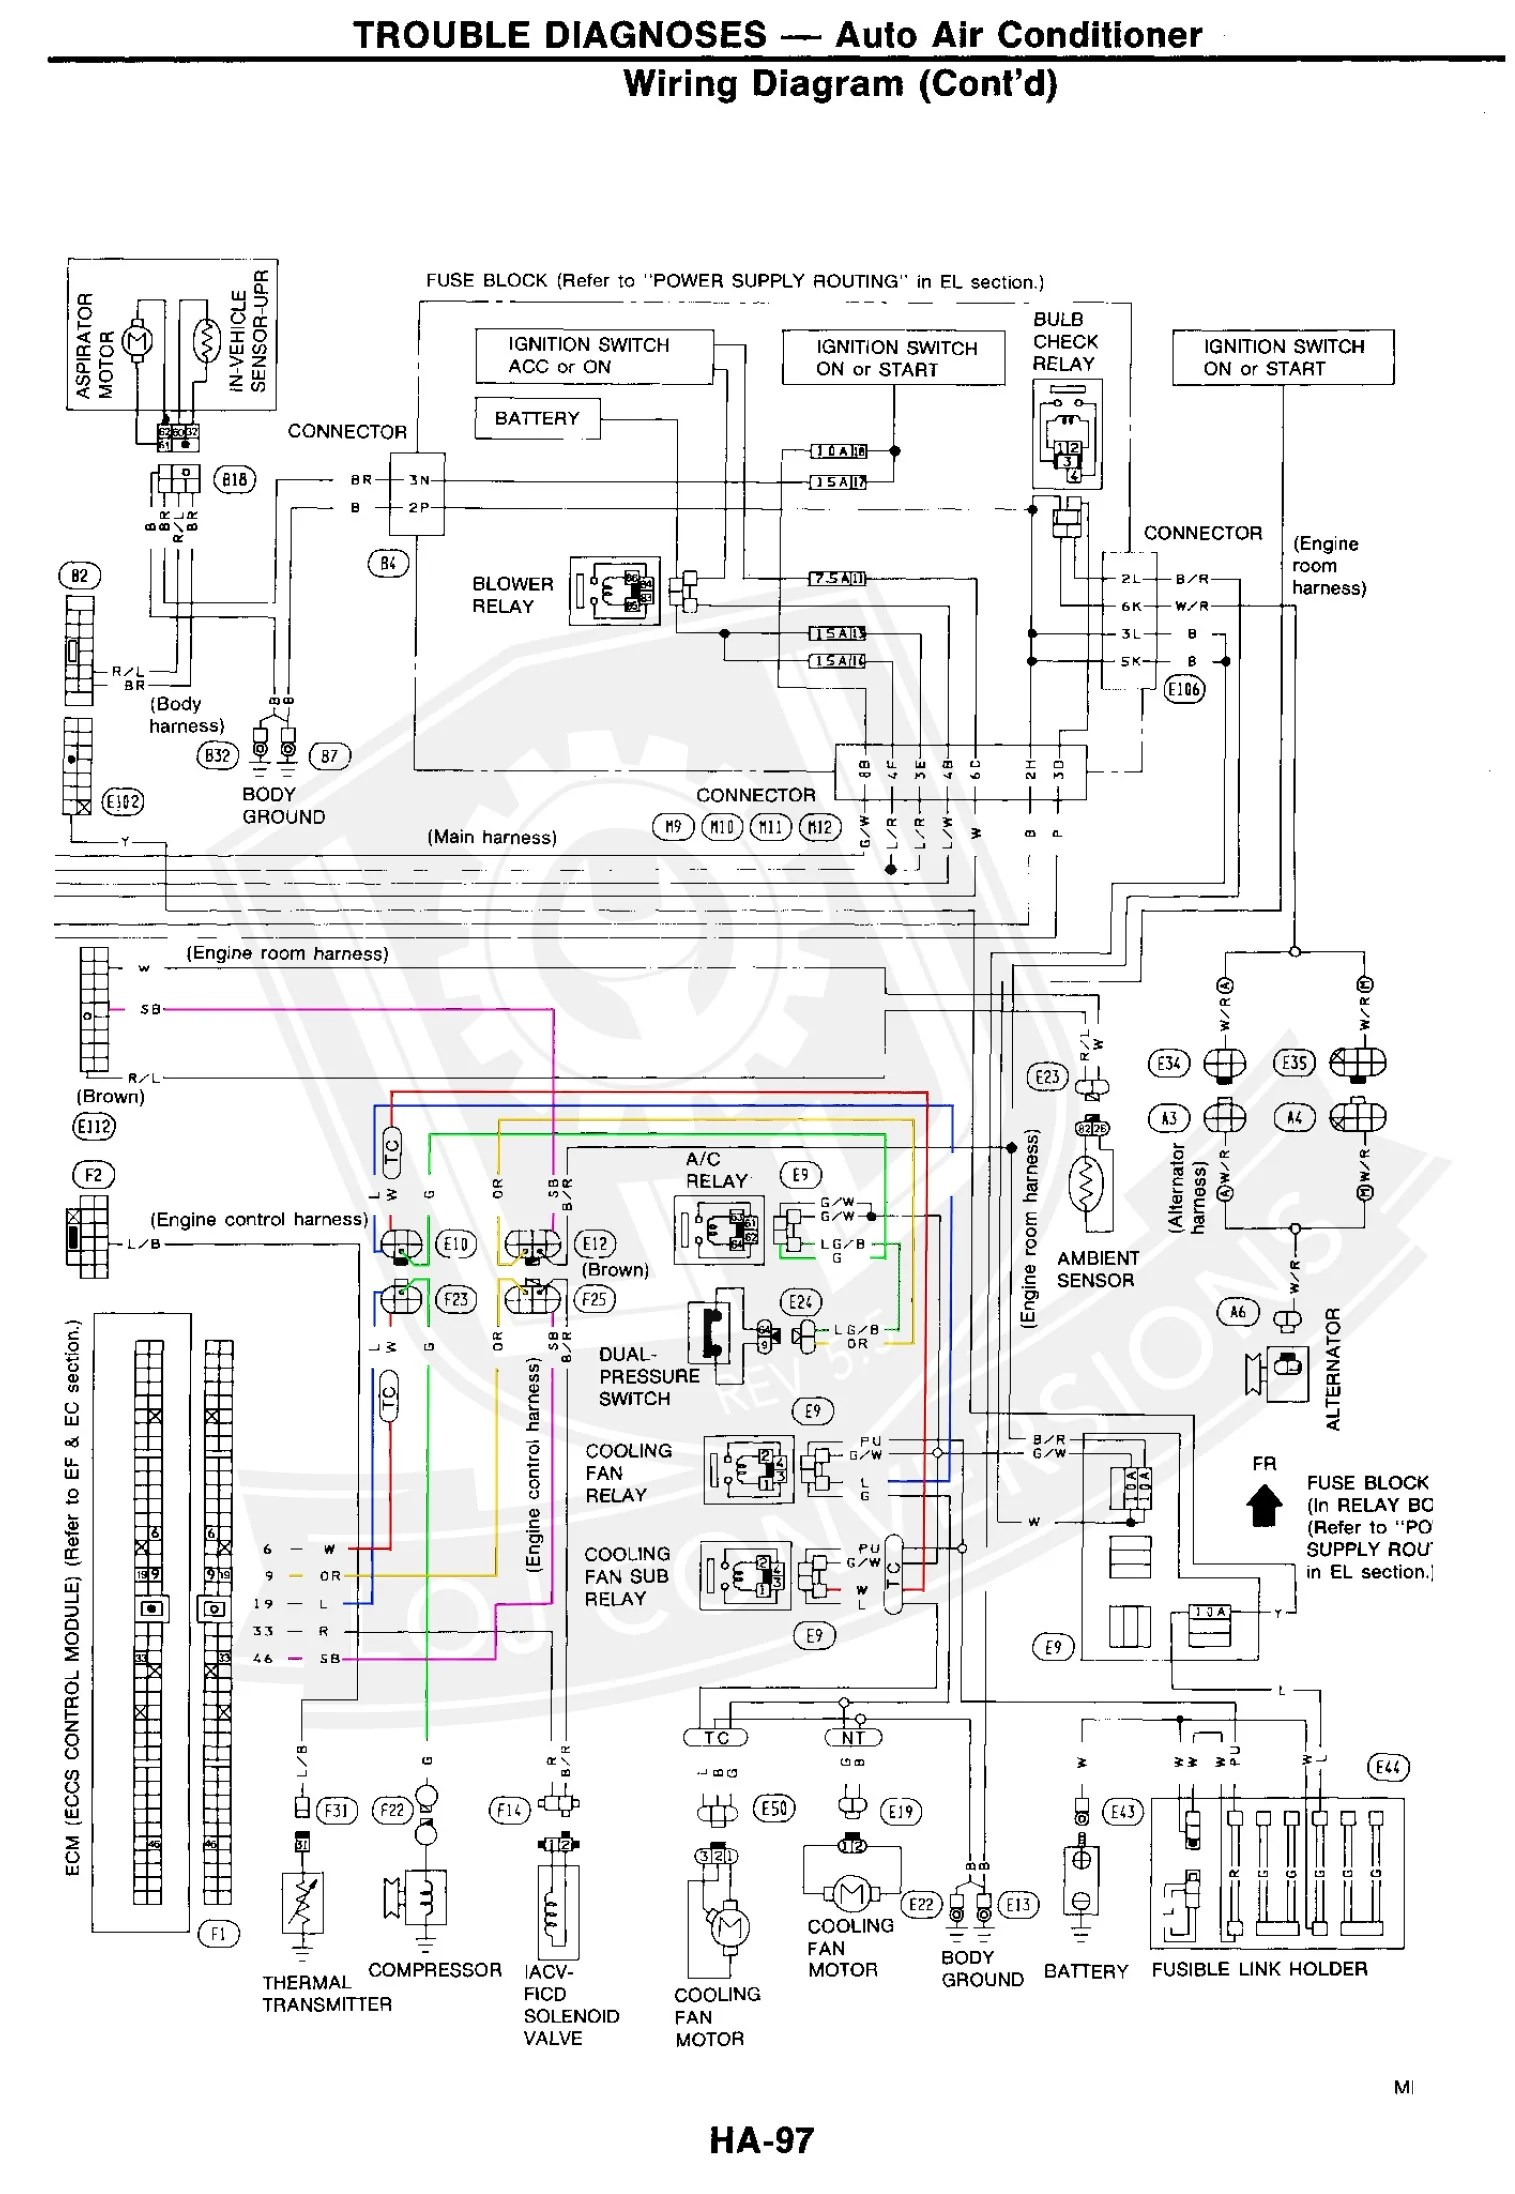 small resolution of 1990 nissan 300zx fuse panel diagram wiring schematic wiring 1990 nissan 300zx fuse panel diagram